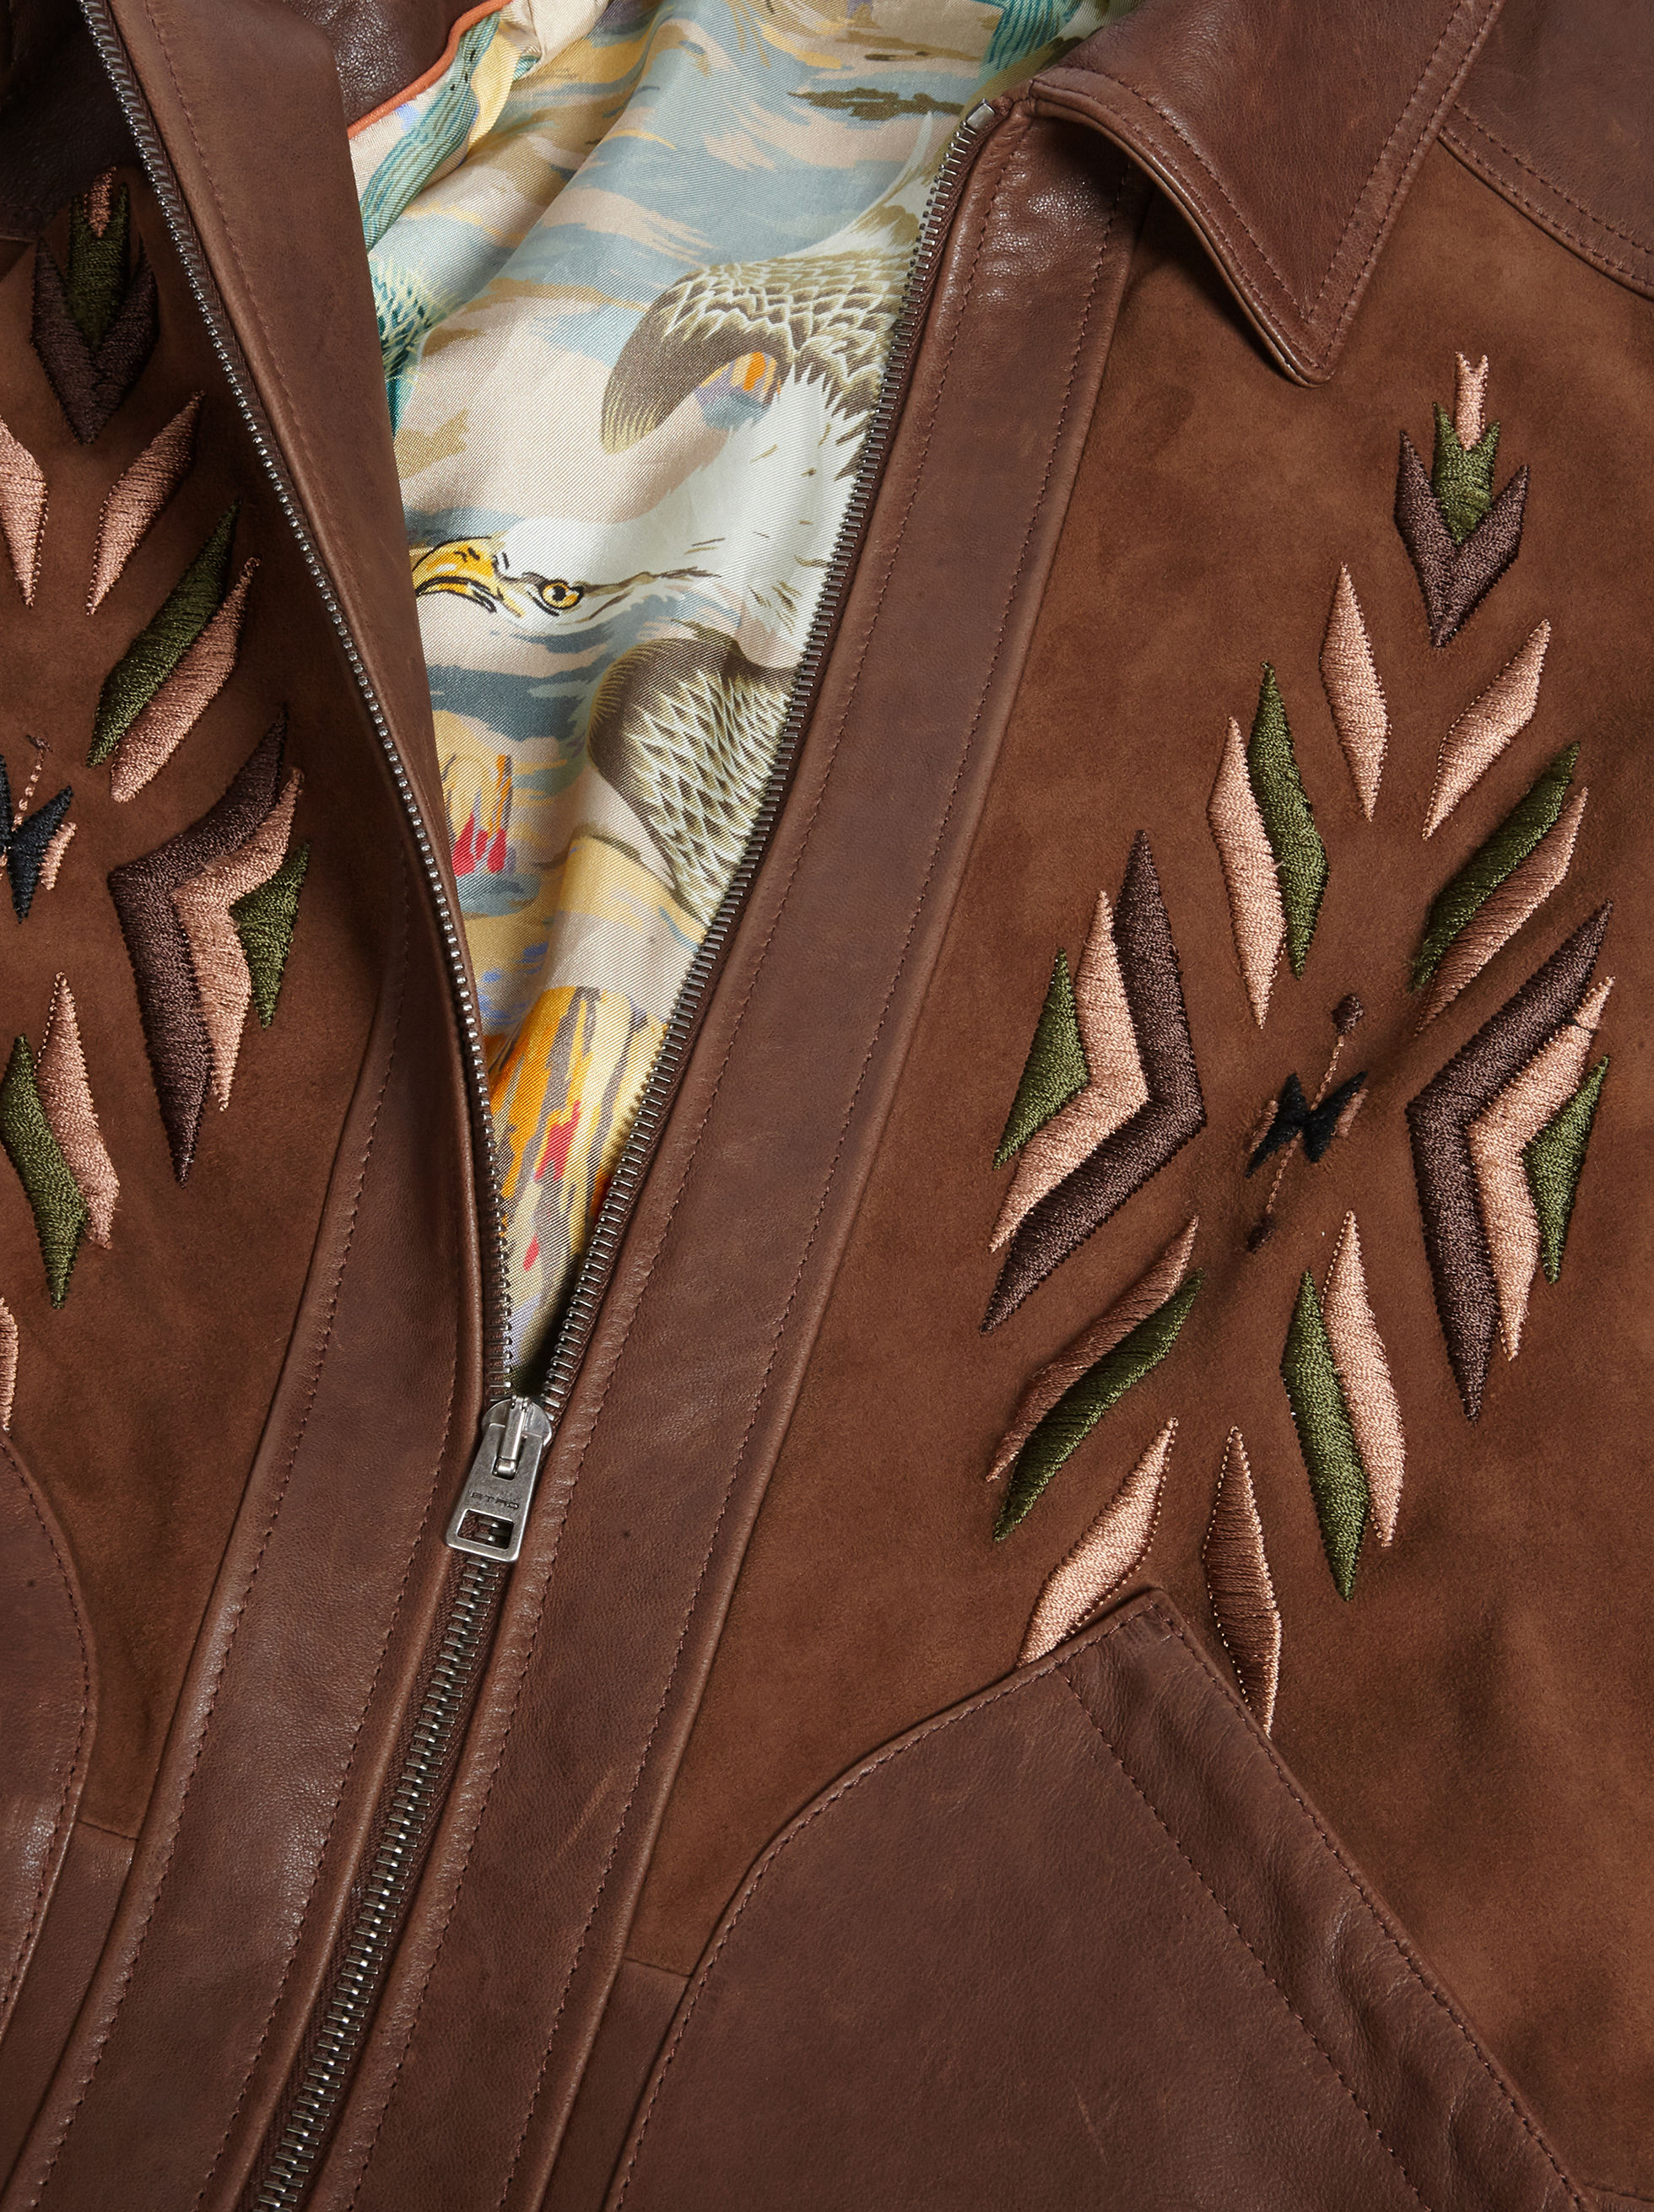 NAPPA LEATHER AND SUEDE BOMBER JACKET WITH IKAT EMBROIDERY